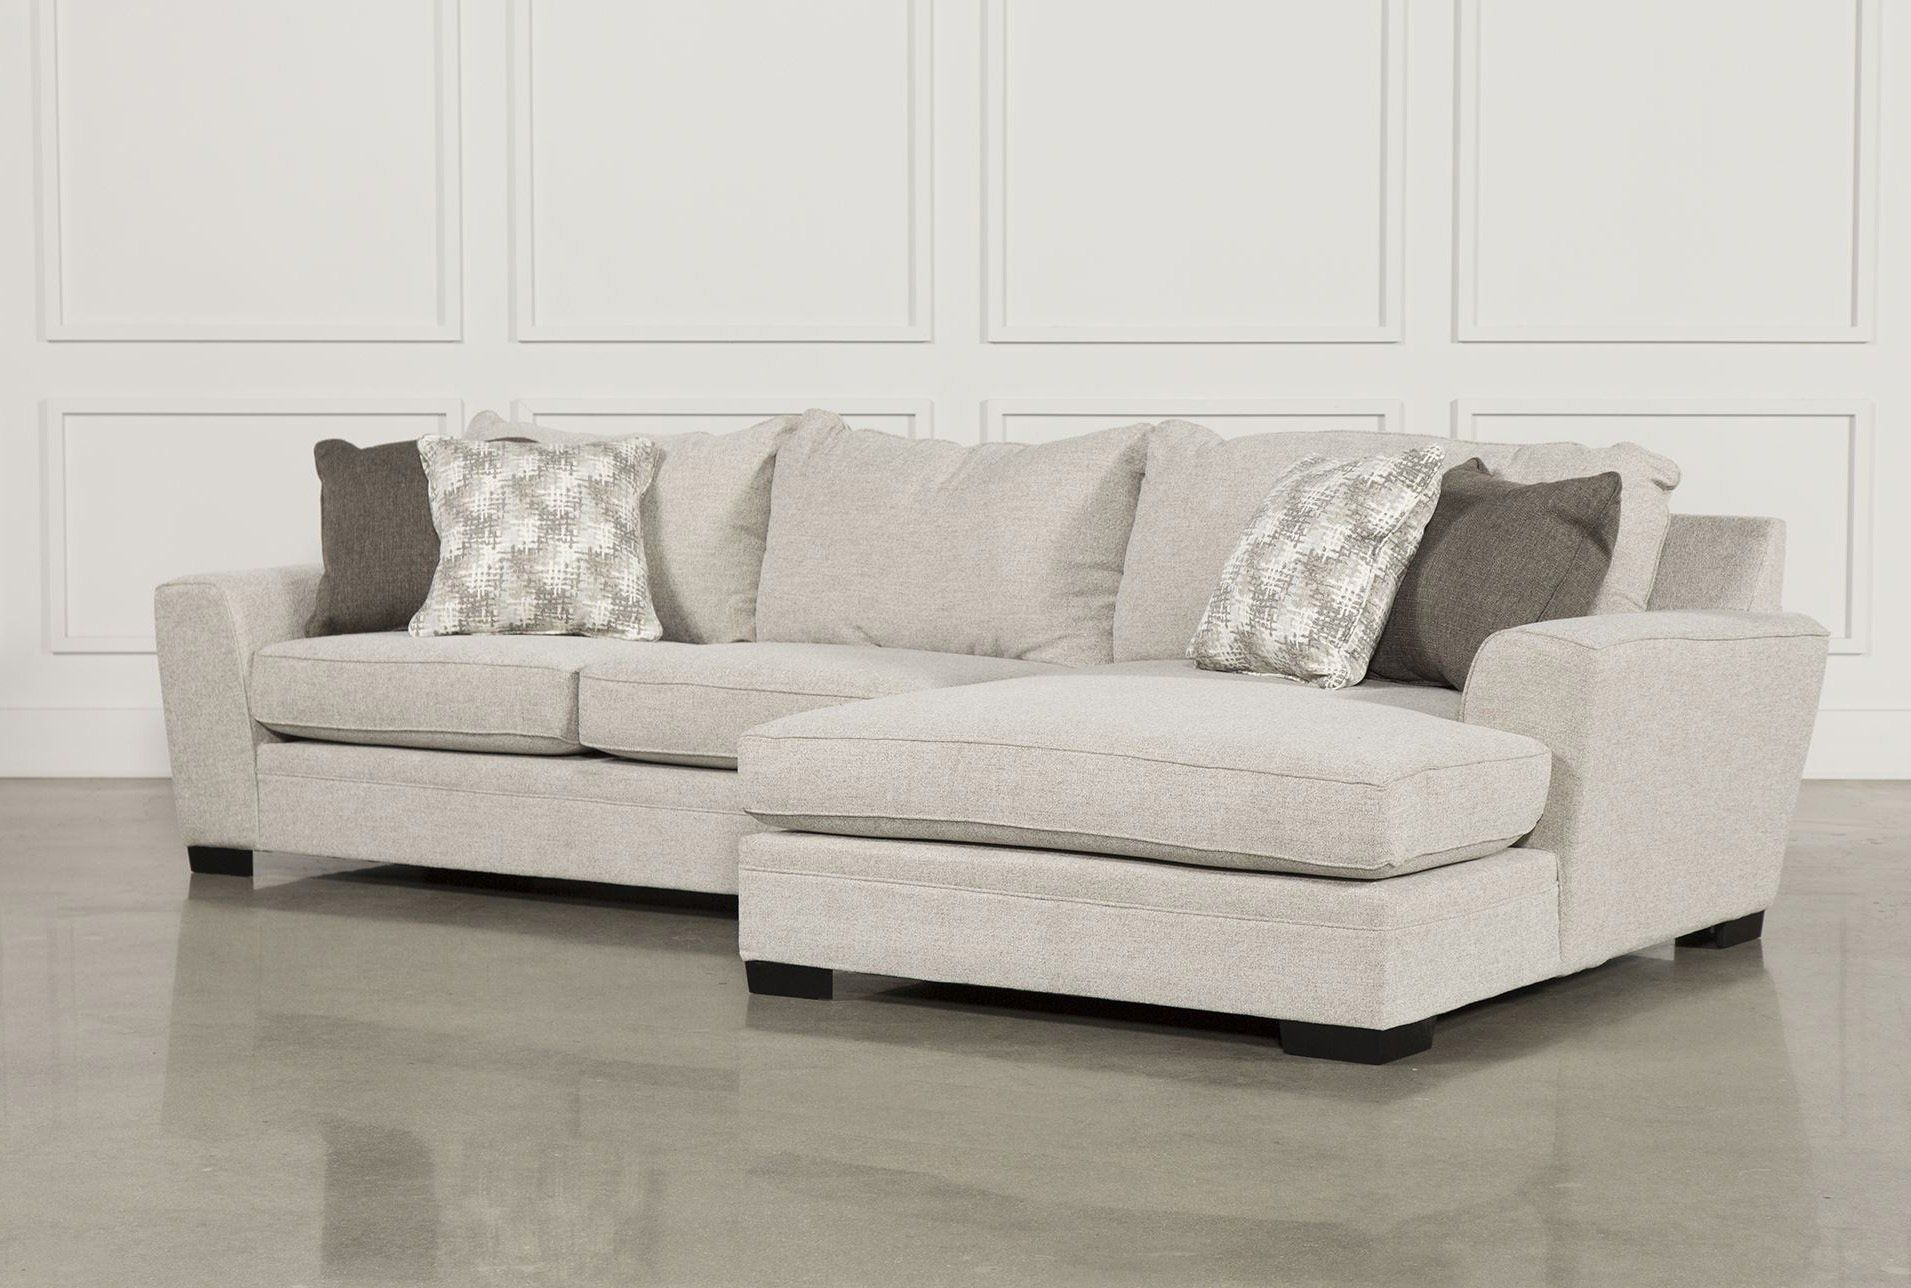 Delano 2 Piece Sectional W/raf Oversized Chaise | Products In Aspen 2 Piece Sleeper Sectionals With Laf Chaise (View 18 of 25)